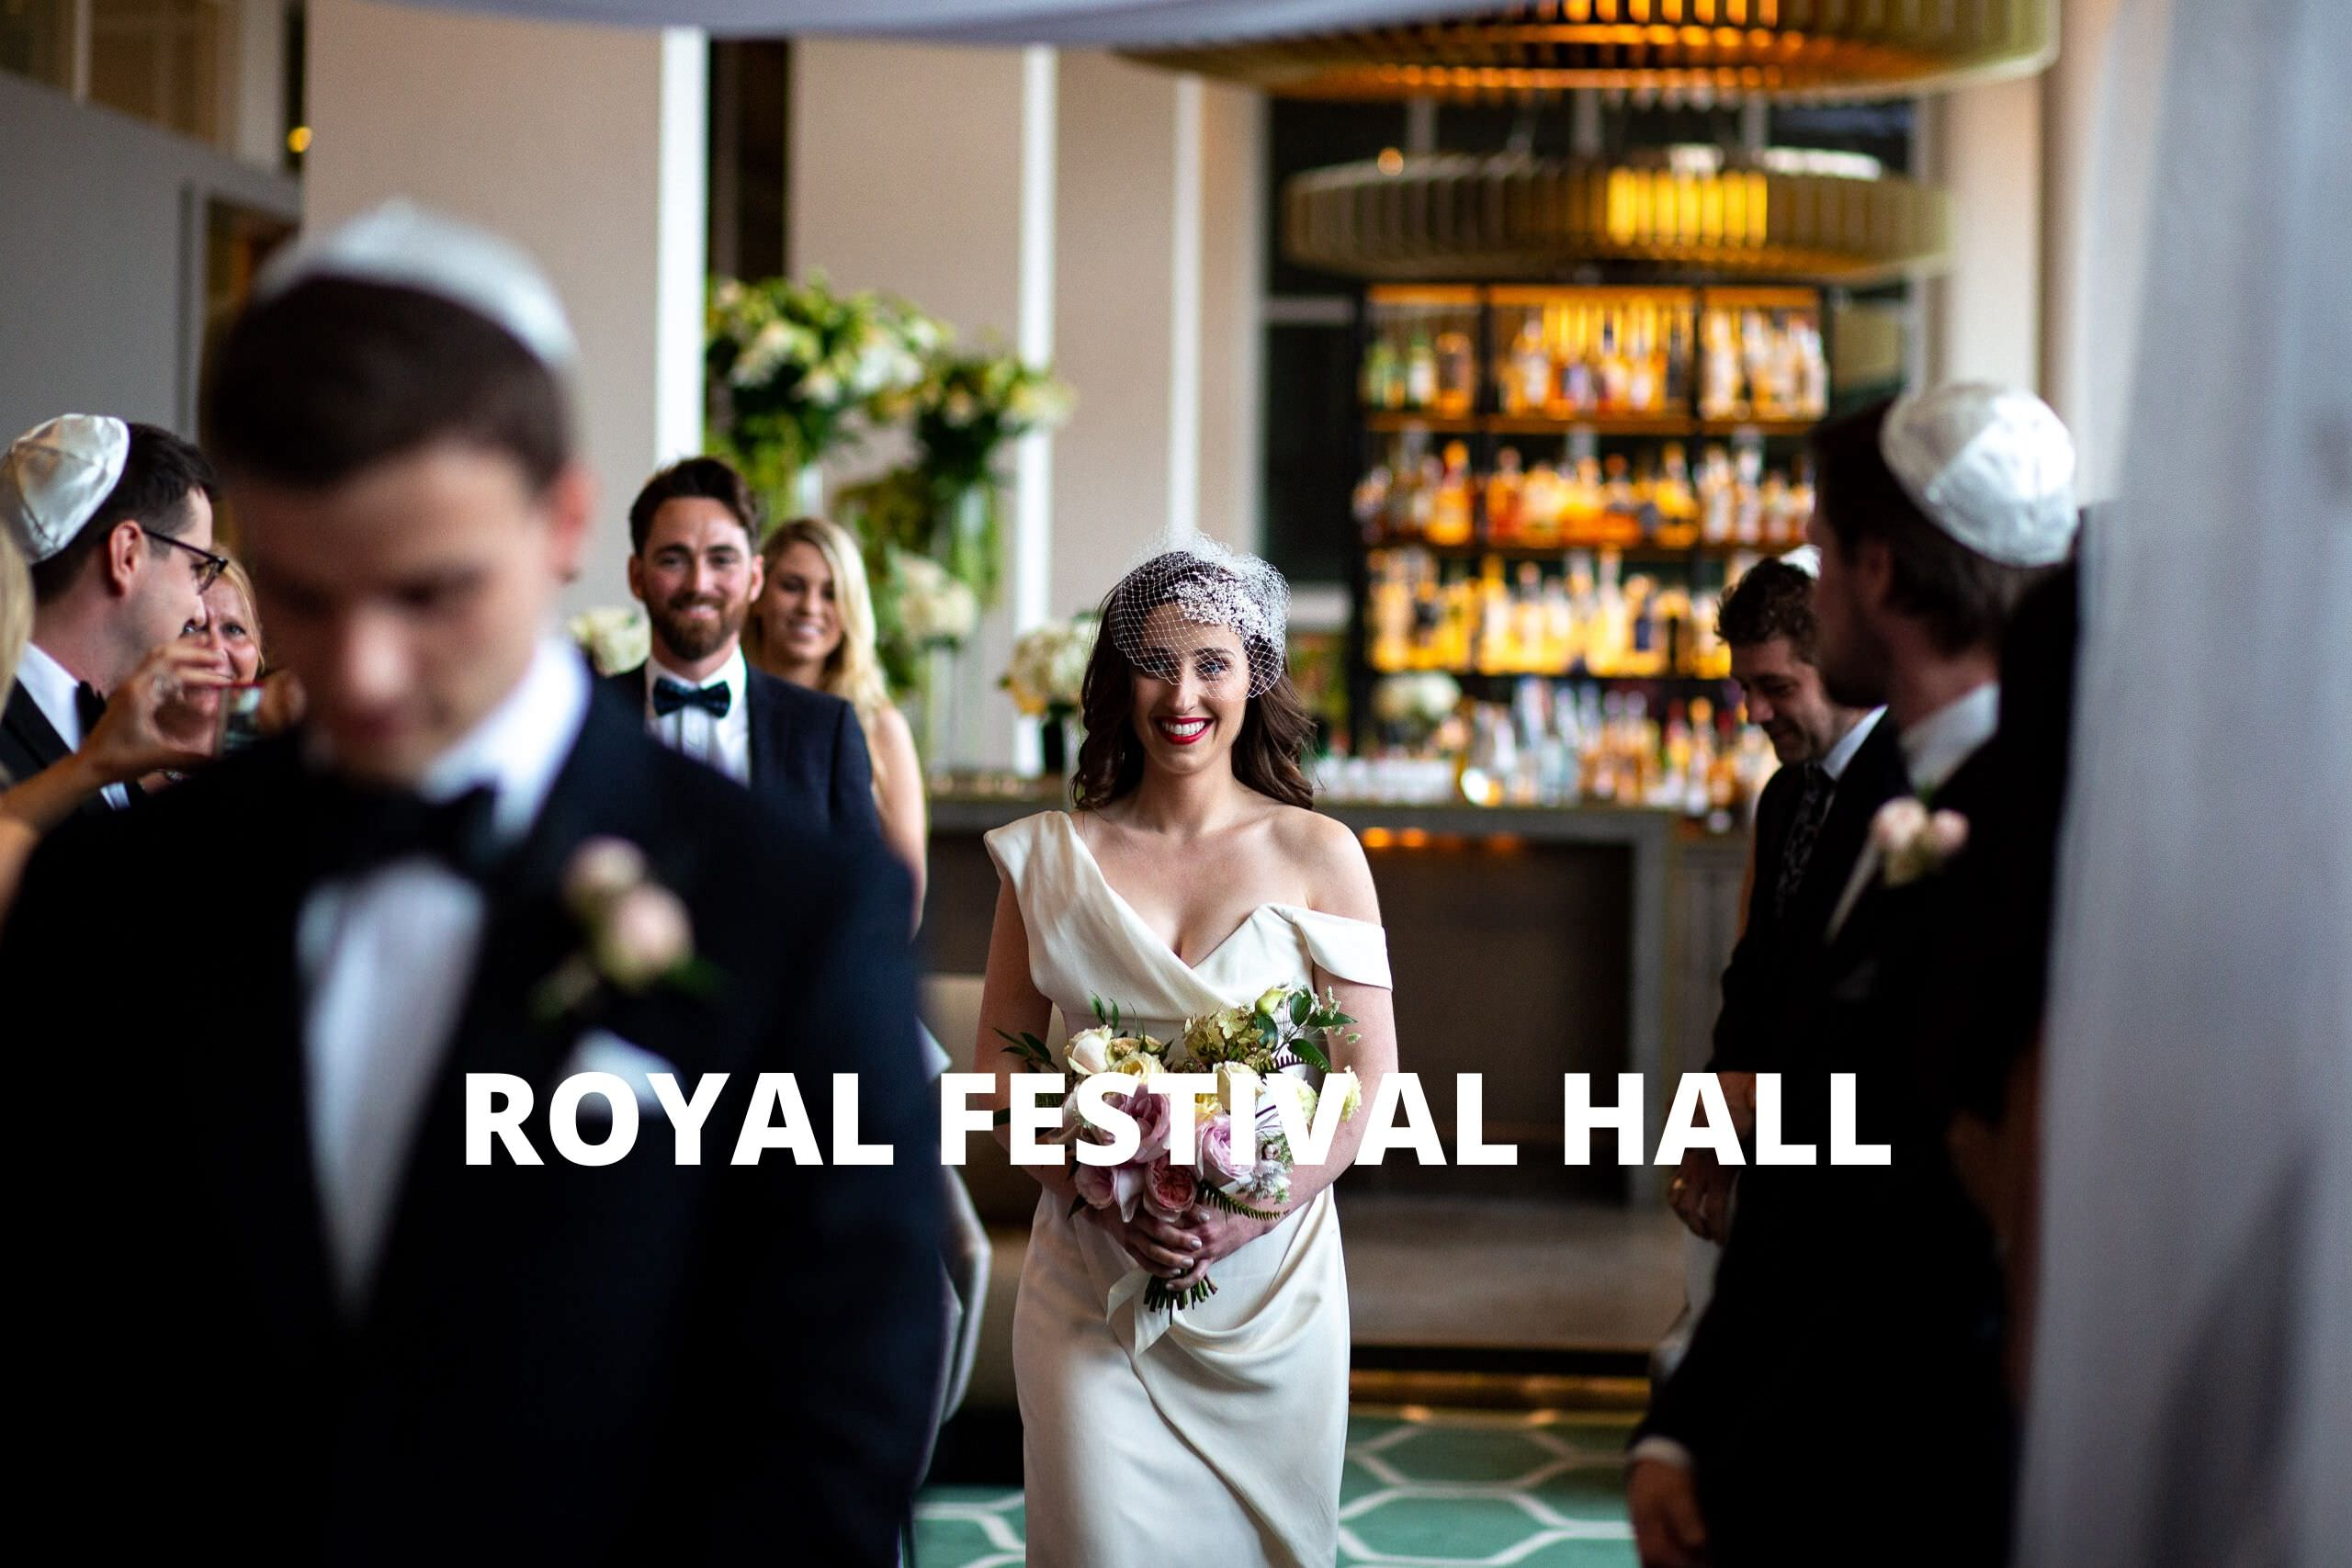 royal festival hall london wedding venue